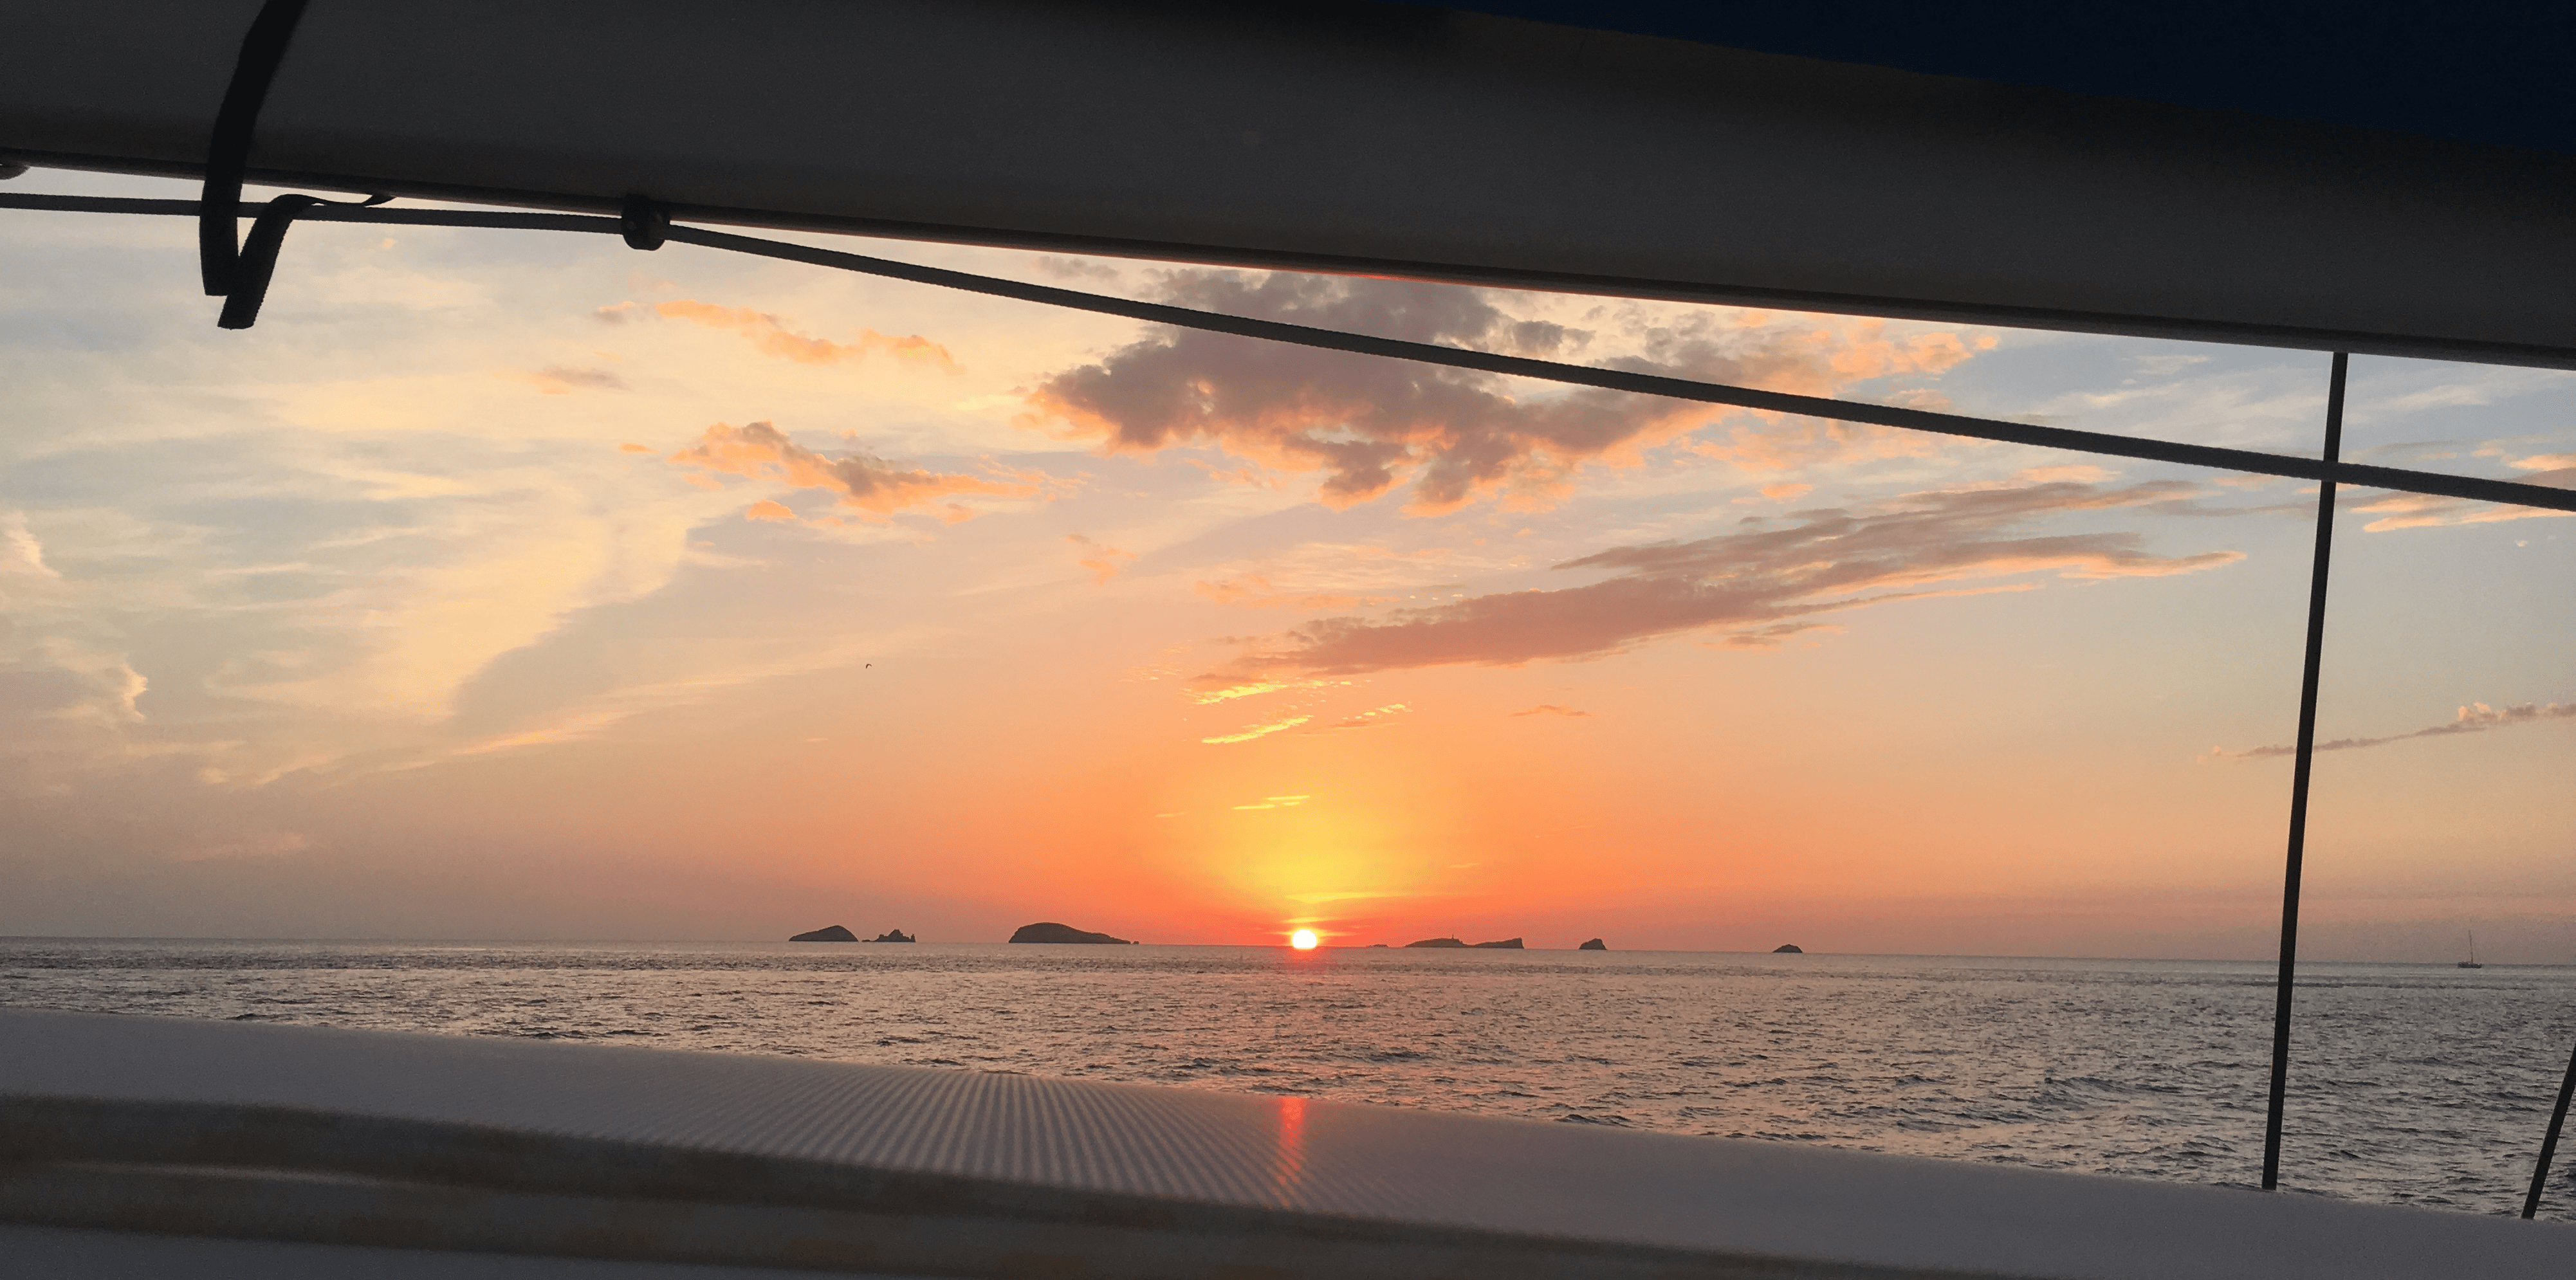 Catamaran day charter Ibiza, sunset from the catamaran